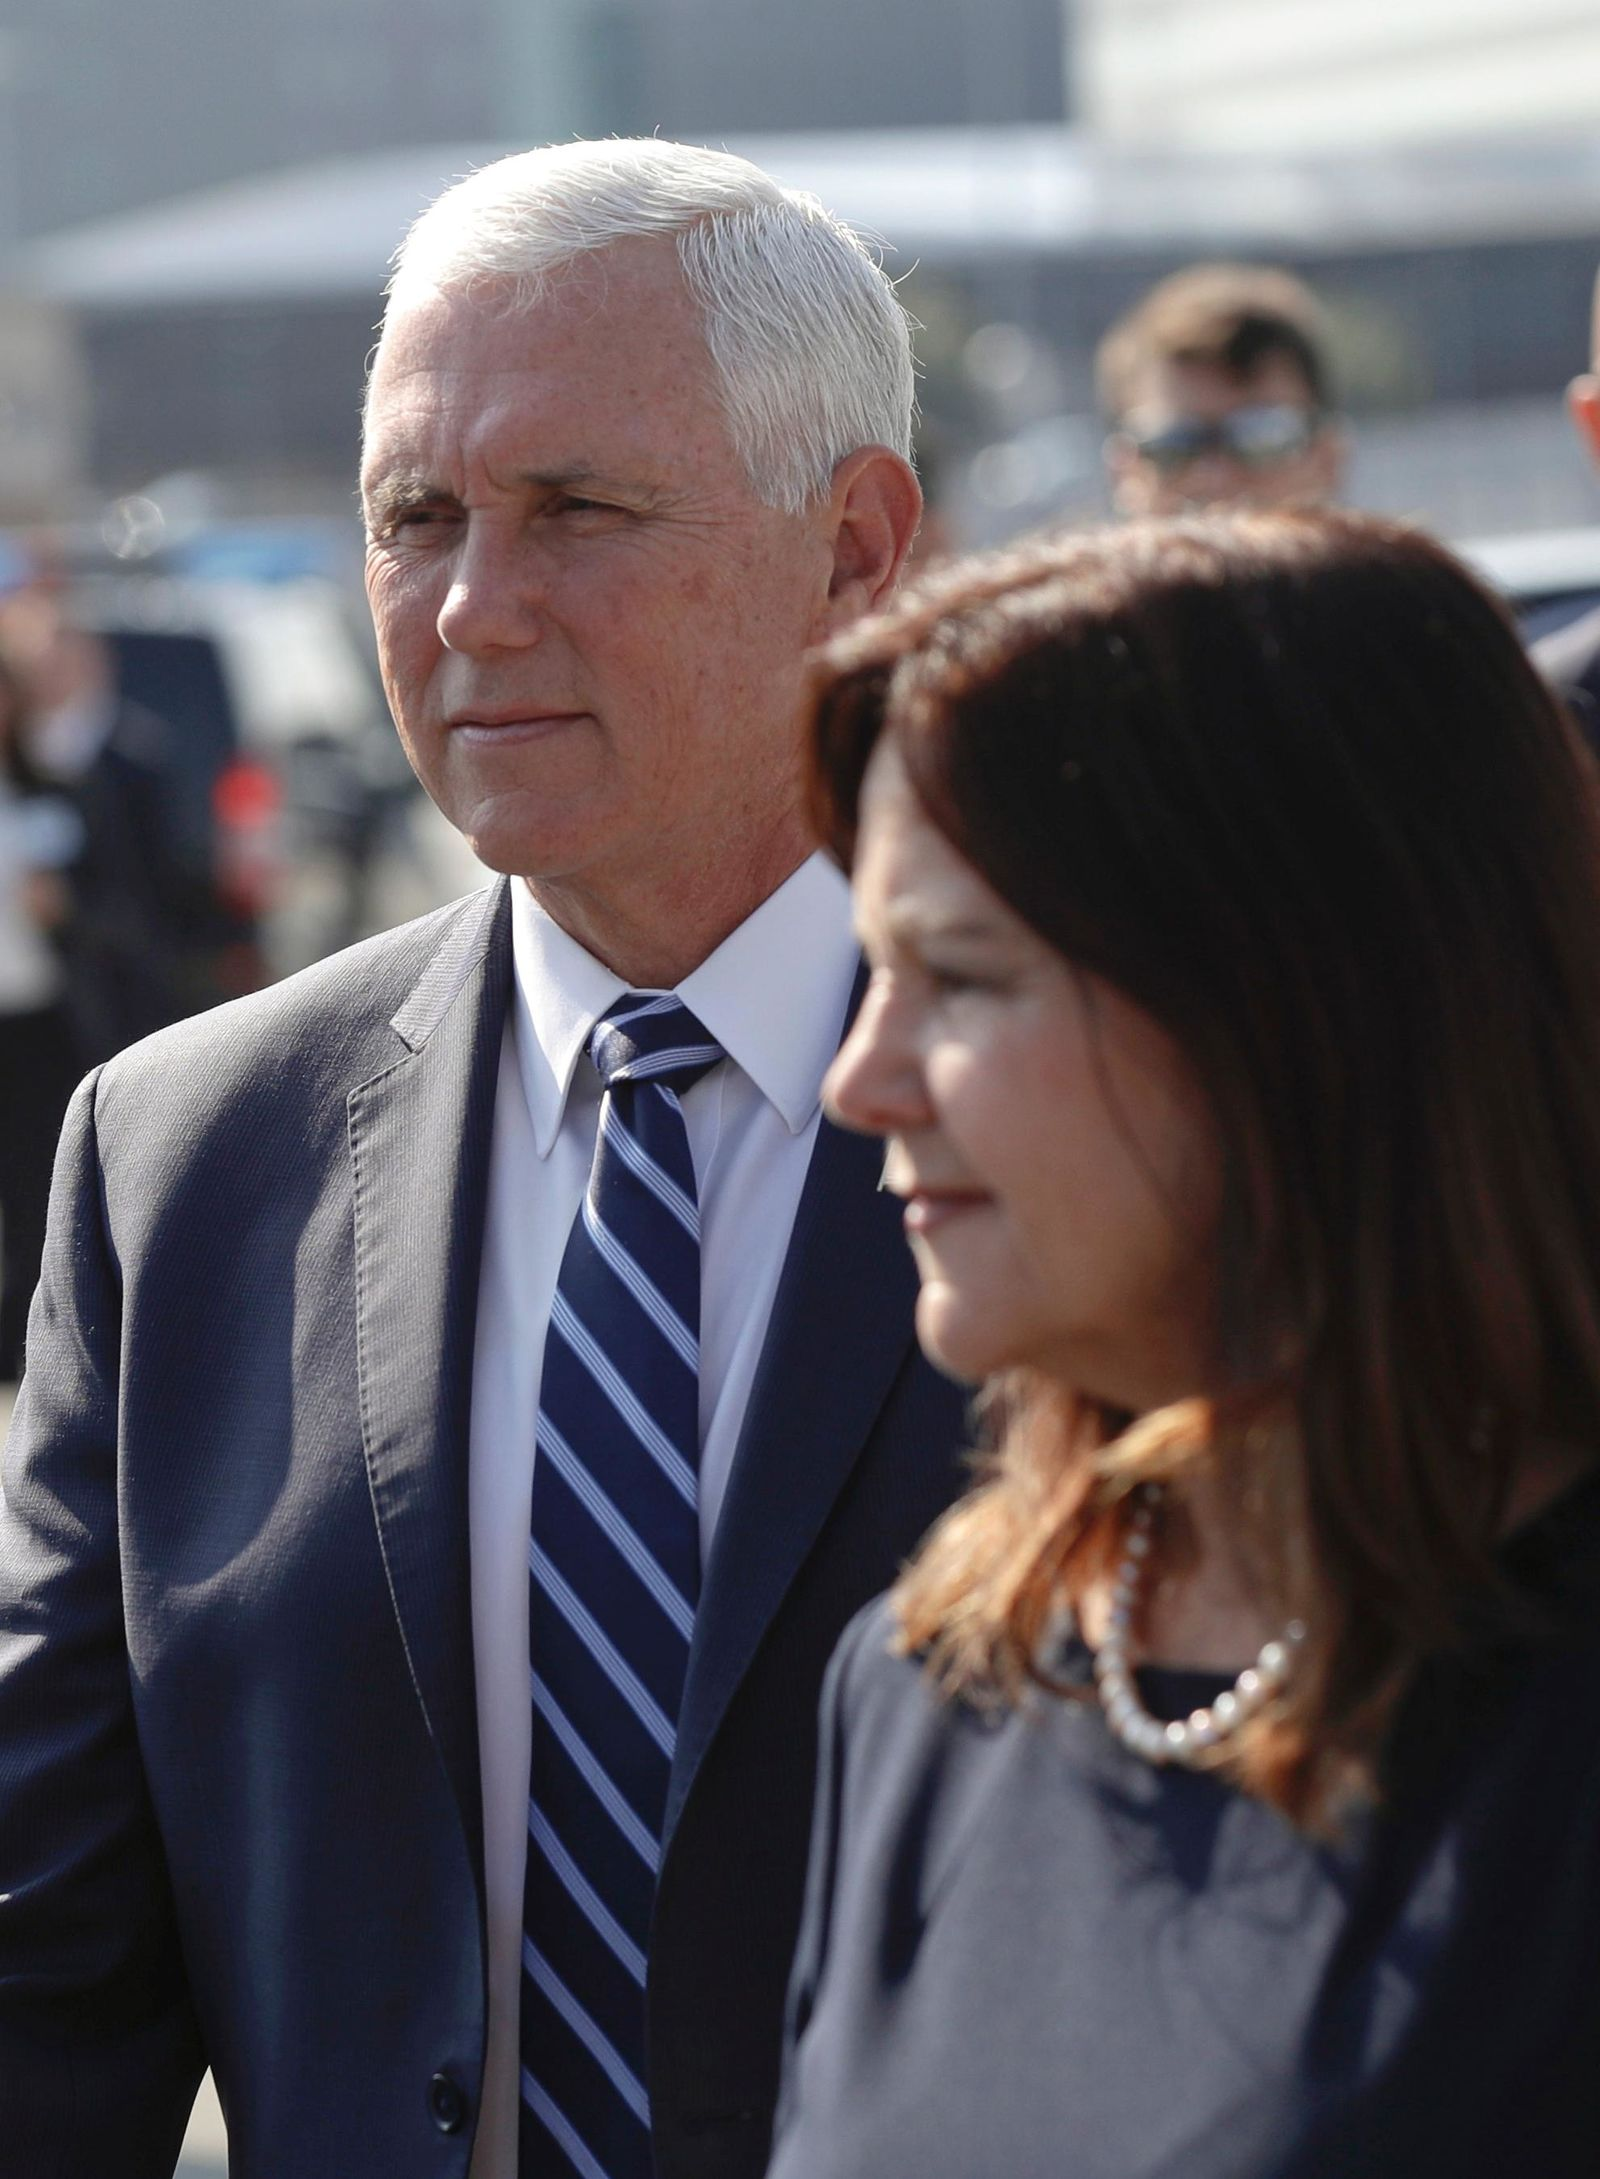 U.S. Vice President Mike Pence and his wife Karen wave arrive in Warsaw, Poland, Sunday, Sept. 1, 2019. Pence will attend a memorial ceremony marking the 80th anniversary of the start of World War II. (AP Photo/Petr David Josek)